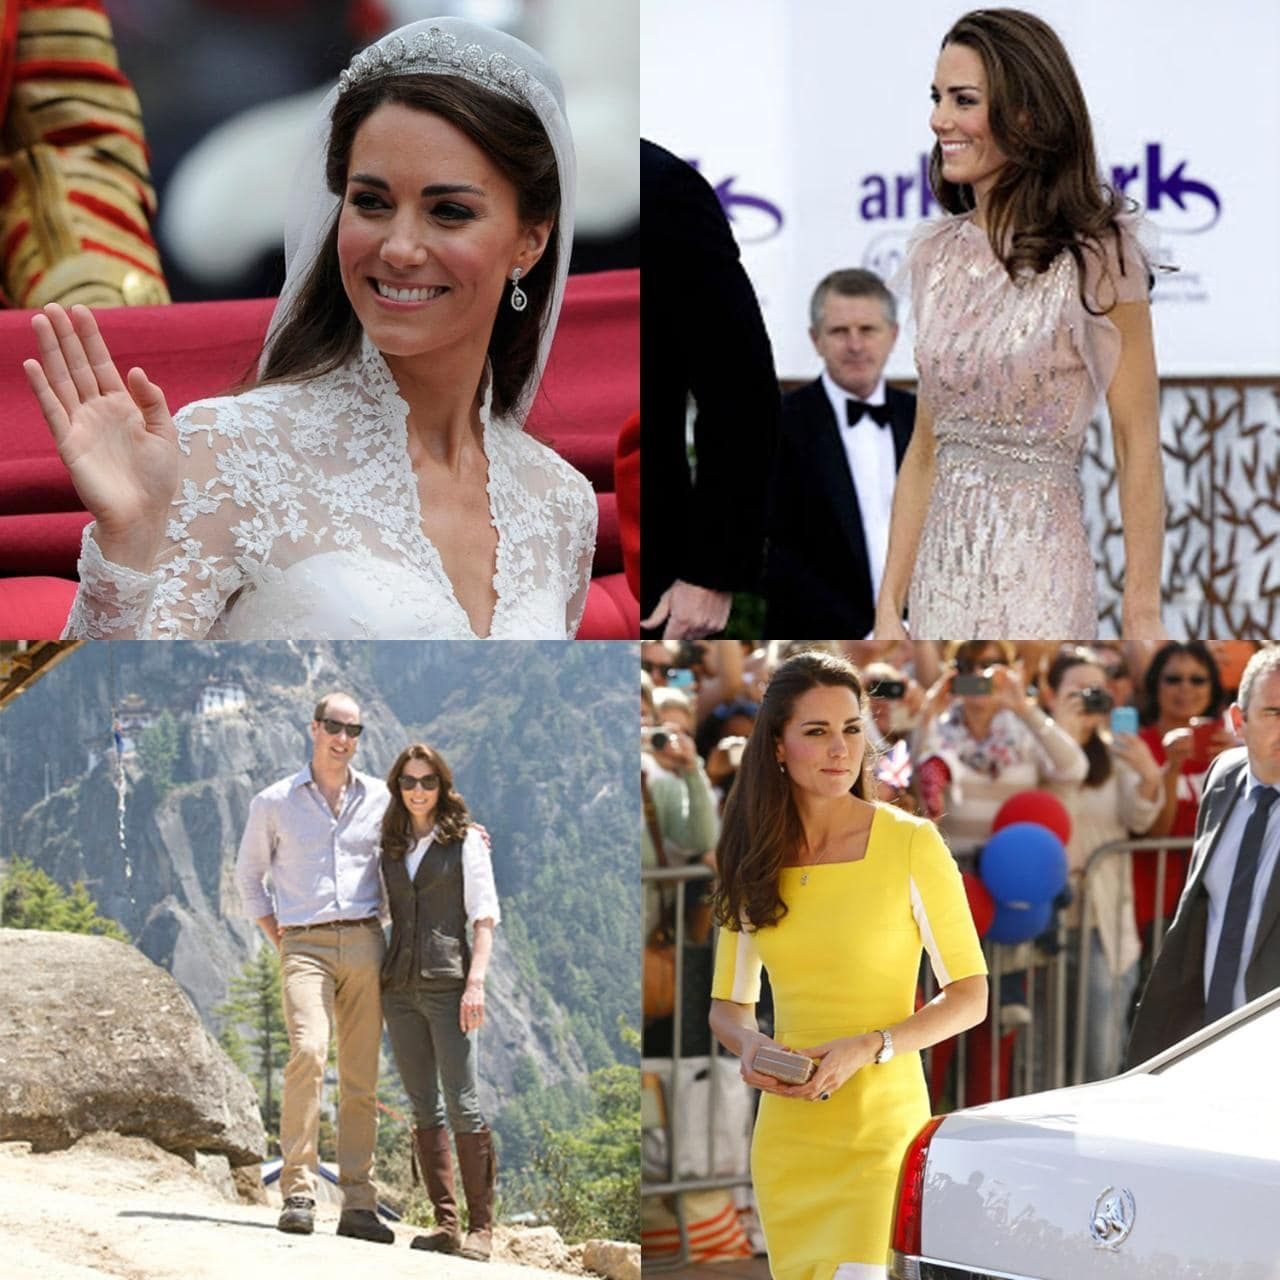 The Duchess Of Cambridge's Most Iconic Looks